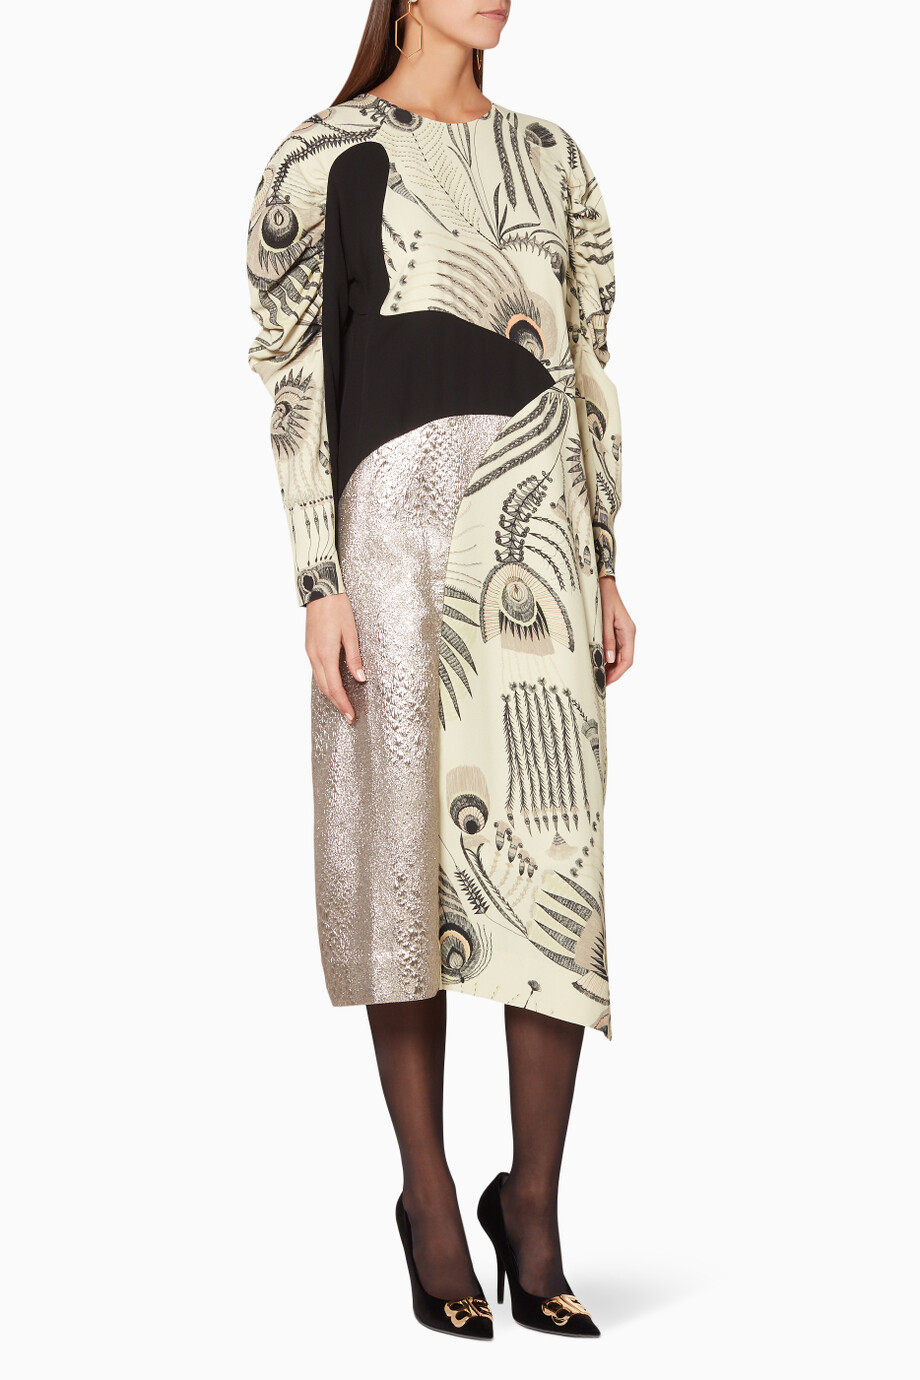 f74c956c3 Shop Dries Van Noten Neutral Off-white Peacock-Feather Dullea Dress ...